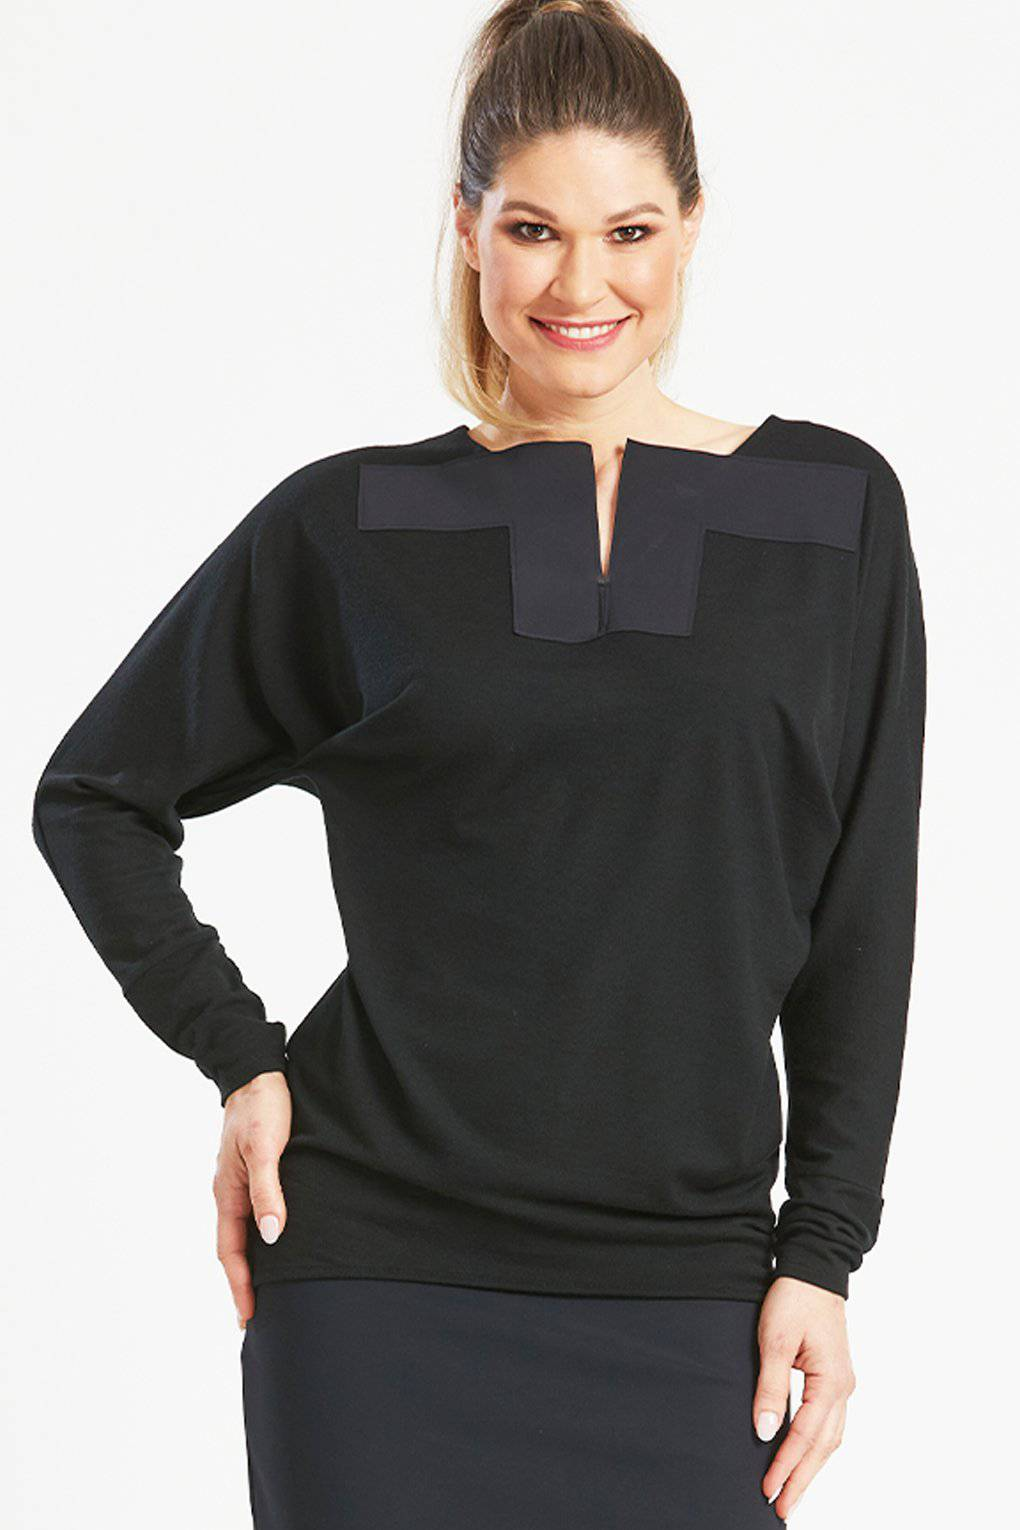 PAULA RYAN Square Neck Magyar Top - Merino - Paula Ryan